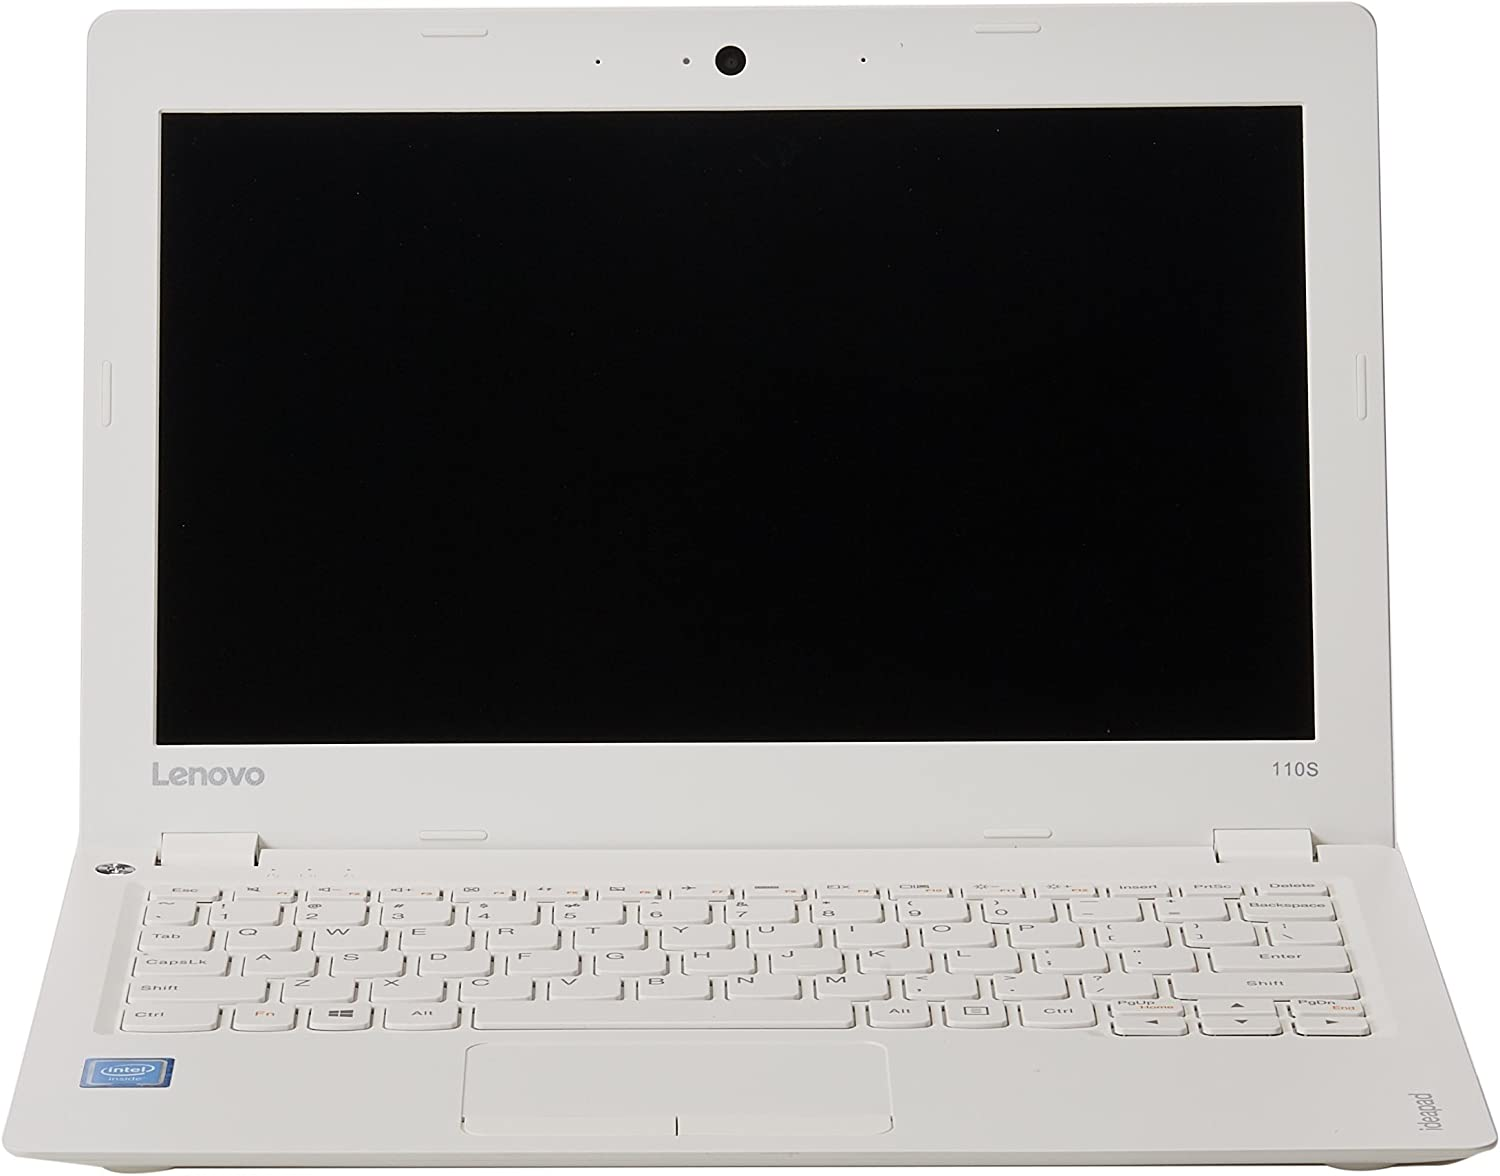 "Lenovo IdeaPad 110s - 11IBR 11.6"" Laptop - White"